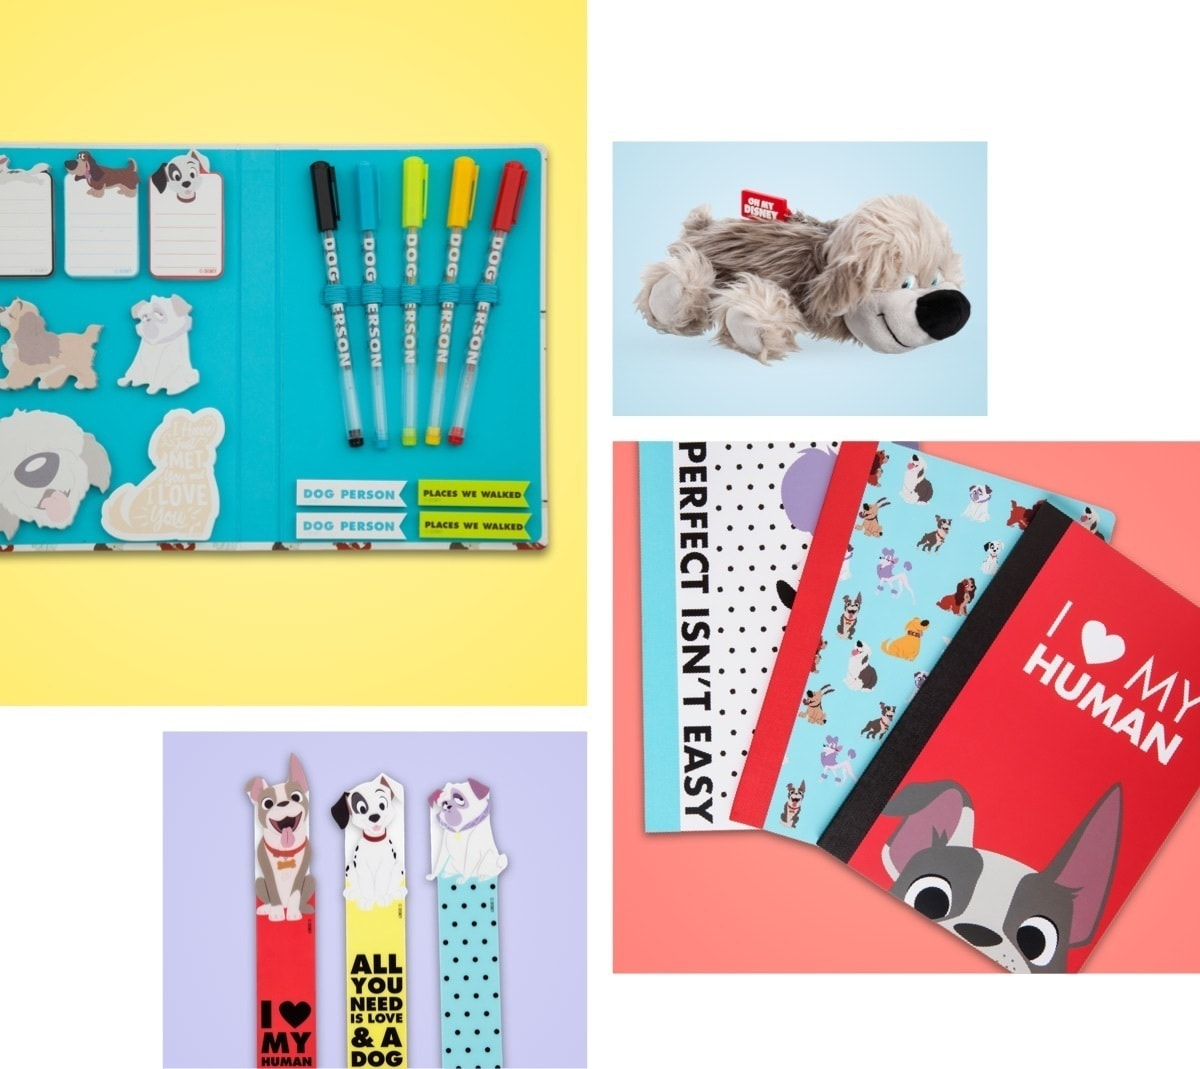 Stationery featuring beloved Disney dogs, including, journals, bookmarks, a stationery set and a Max pencil case.